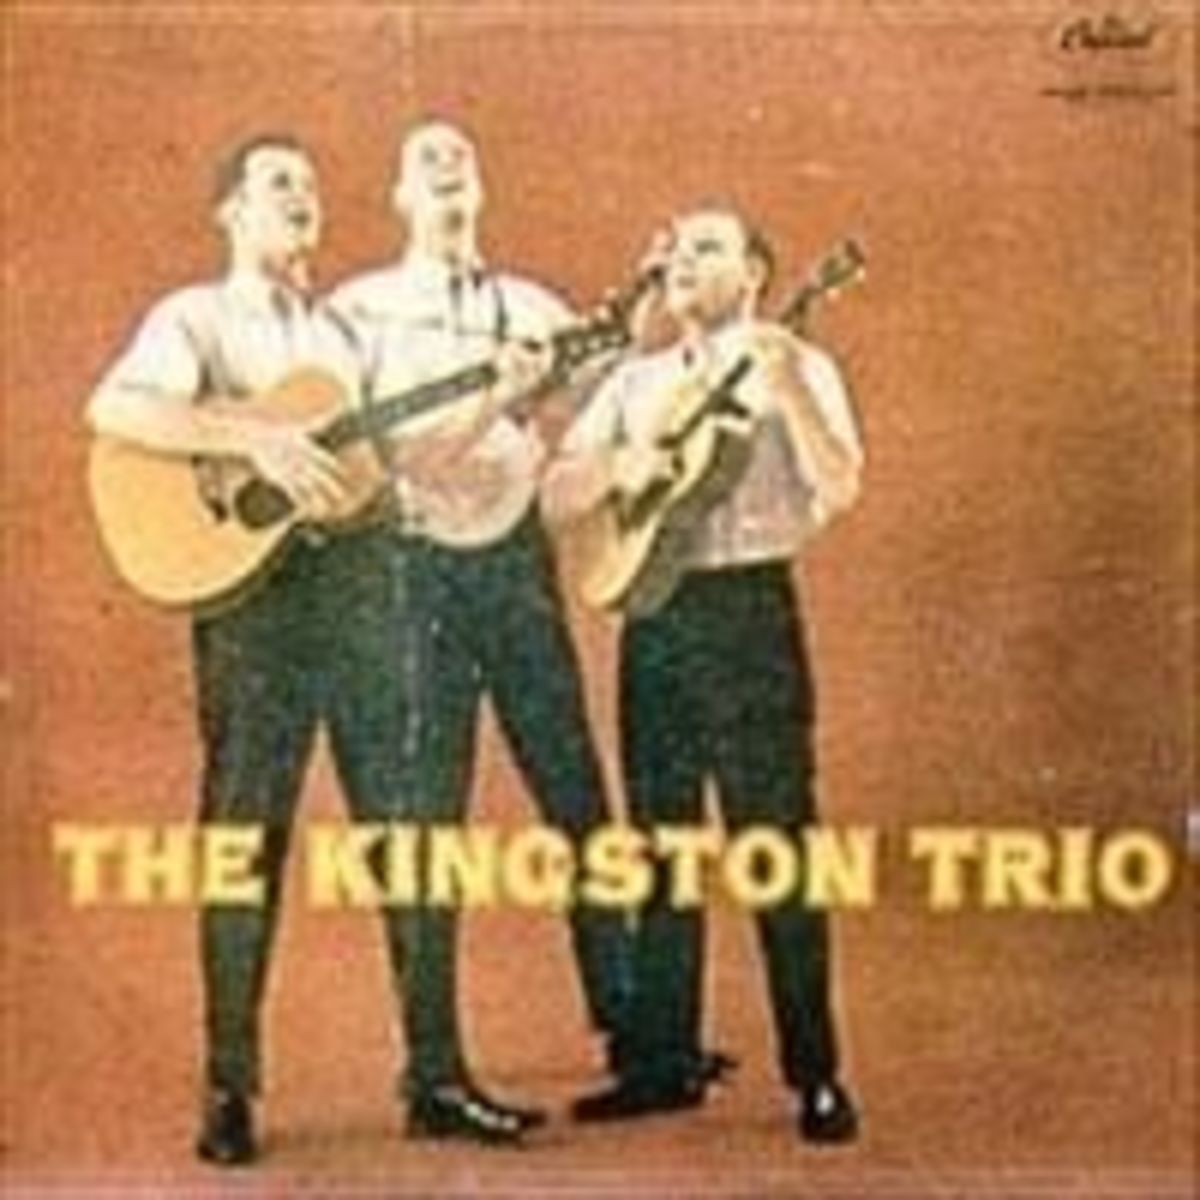 The Kingston Trio's first album